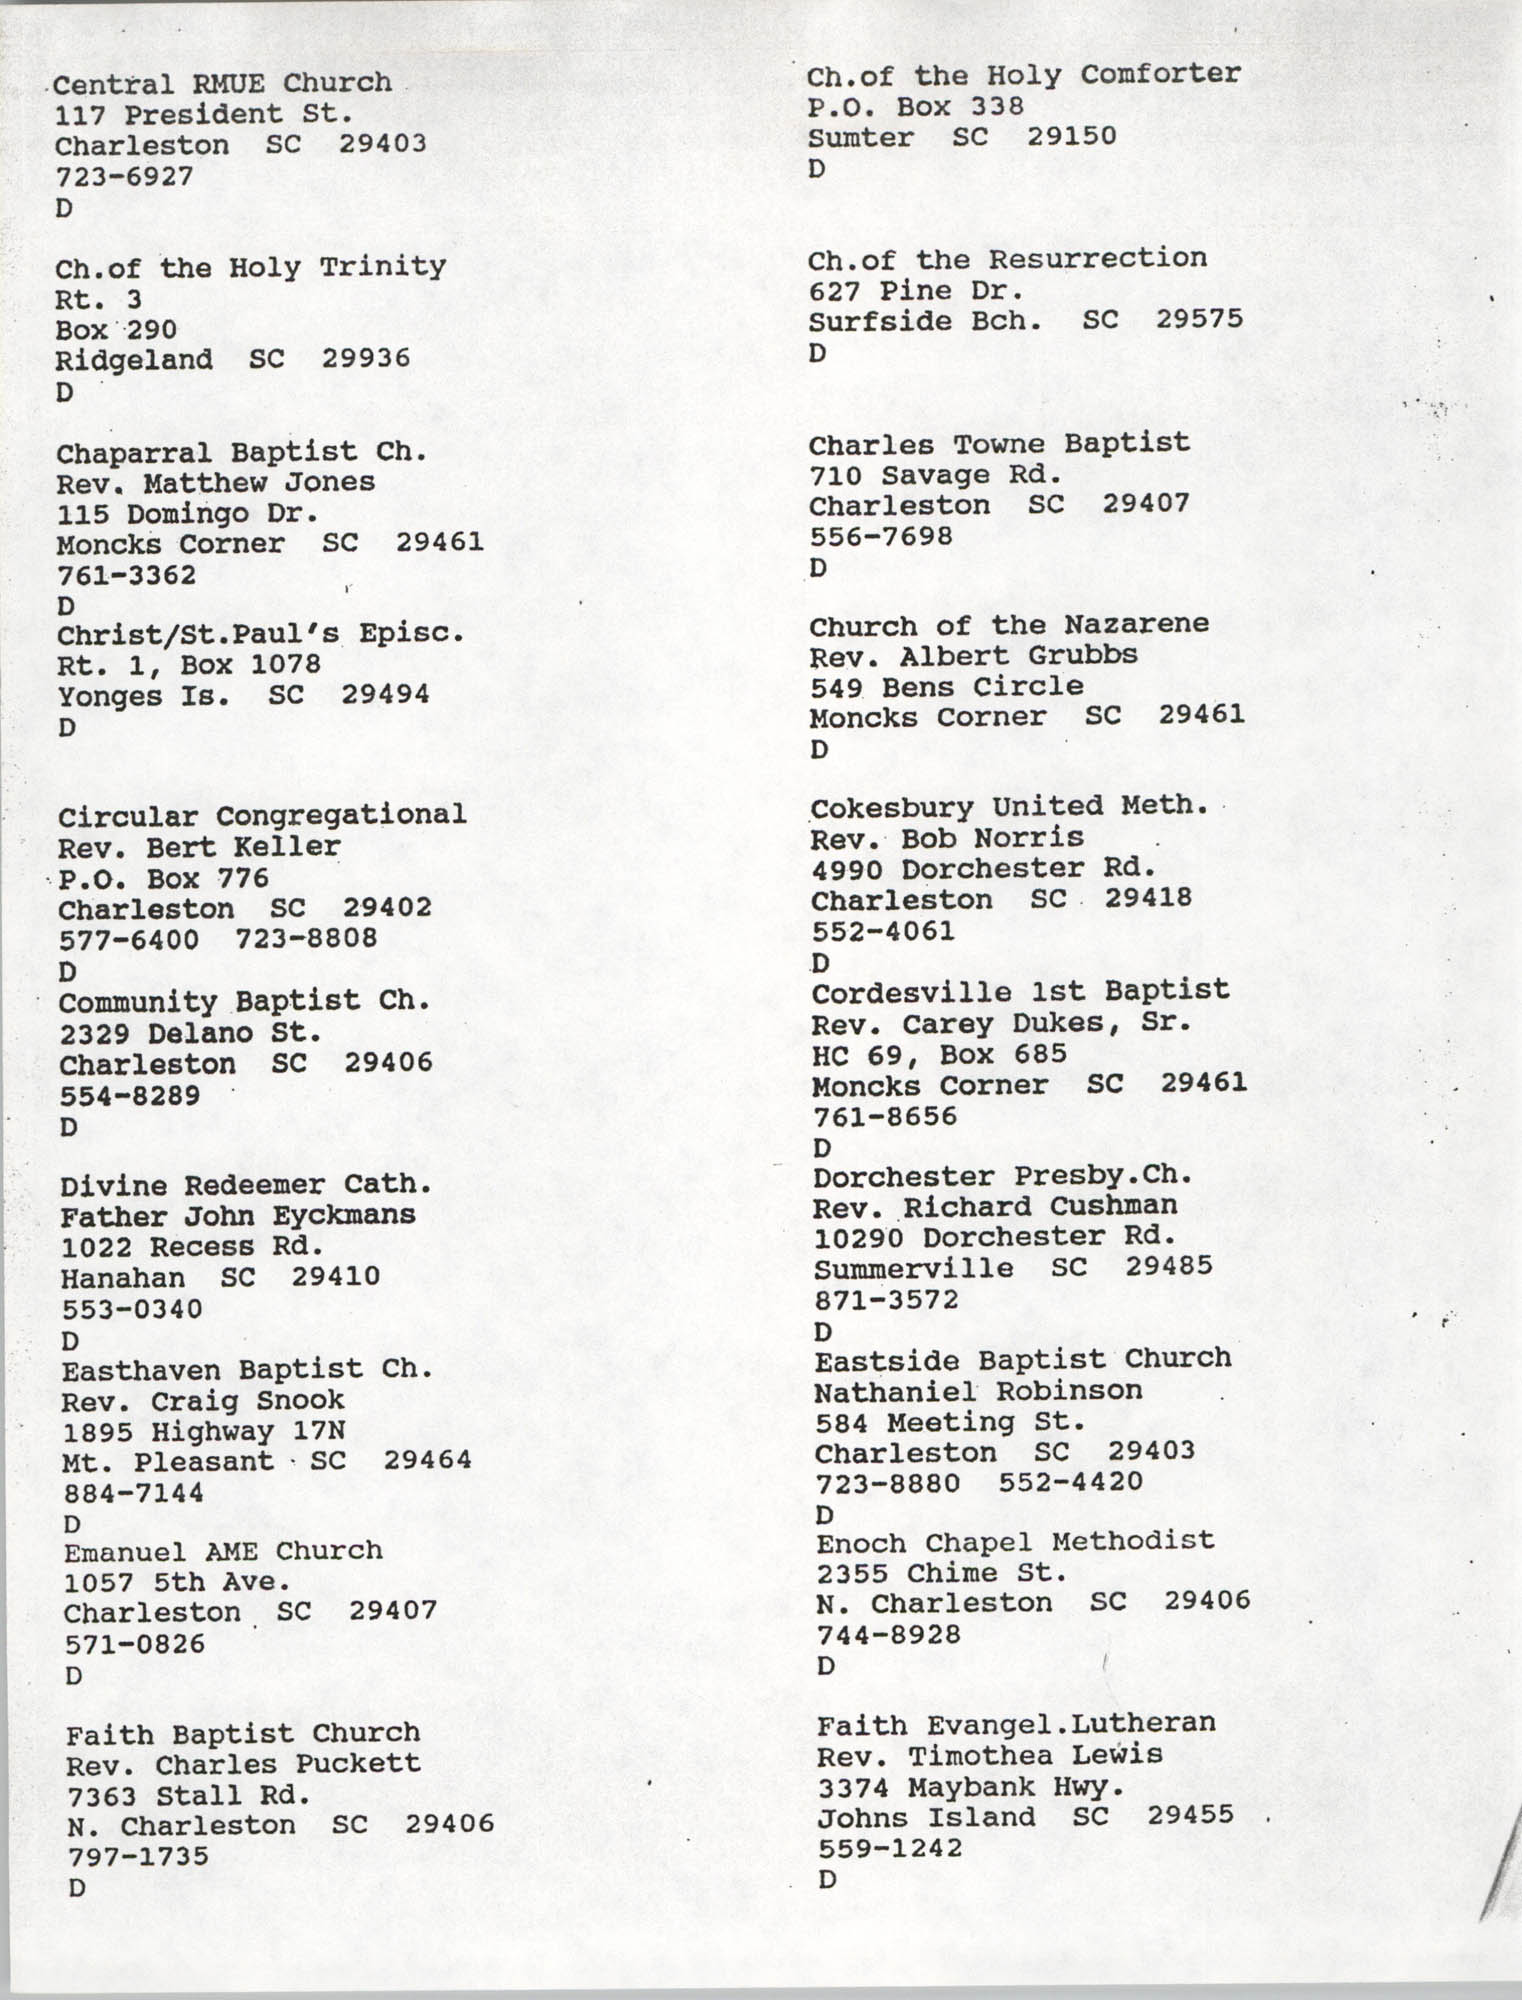 Church Contact List, Charleston Chapter of the NAACP, Page 19